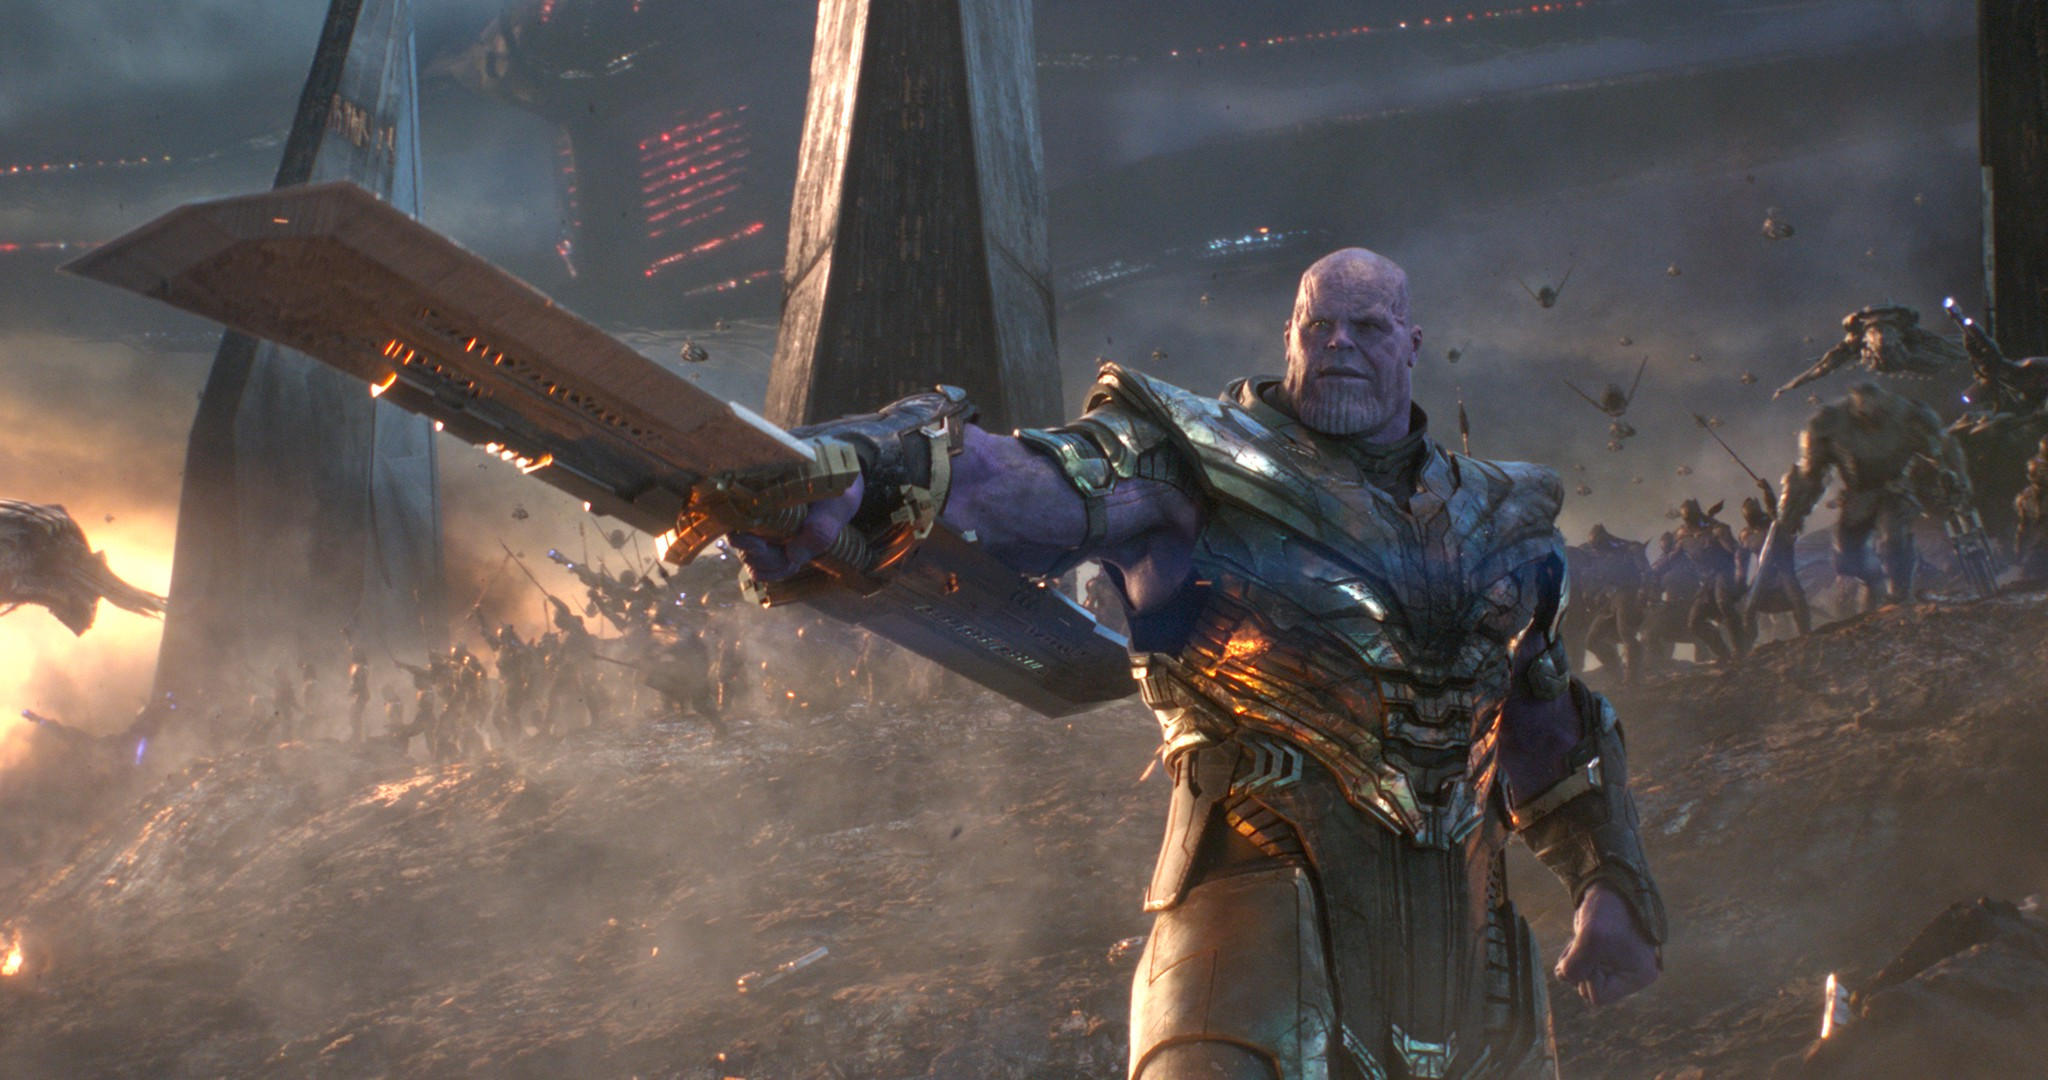 Thanos brandishing a weapon on the battlefield with a huge spaceship in the background.